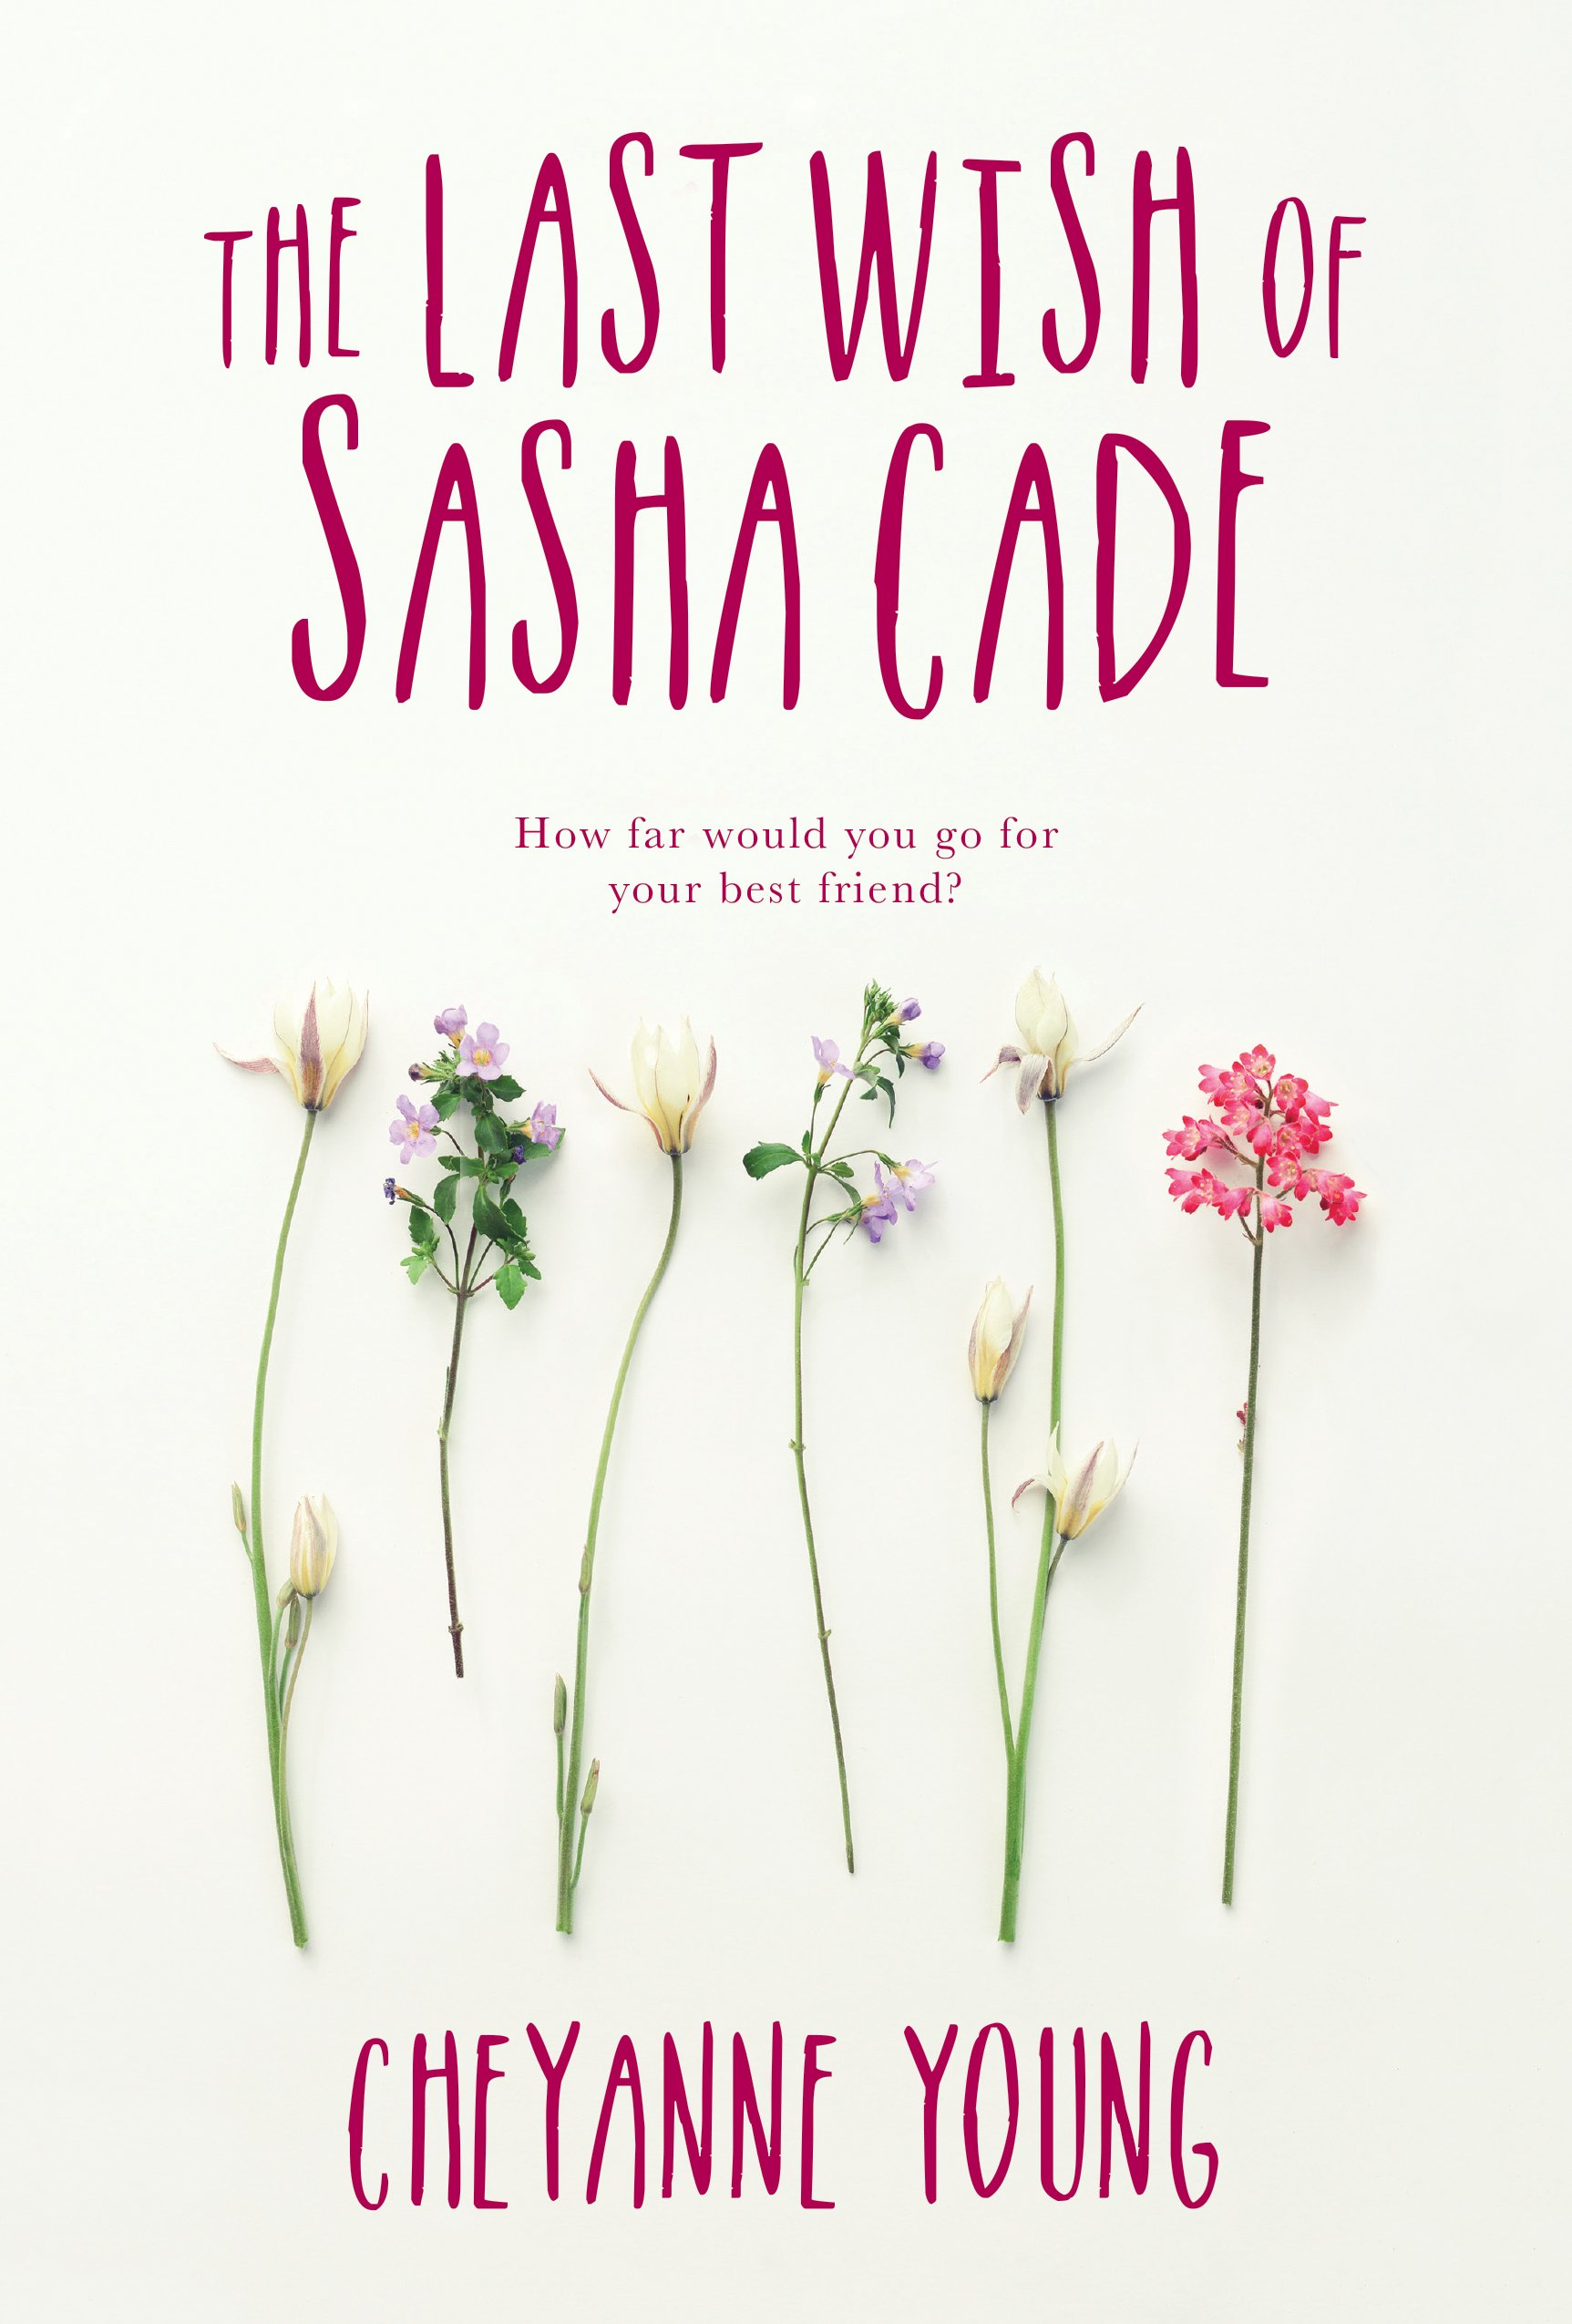 The Last Wist of Sasha Cade by Cheyanne Young